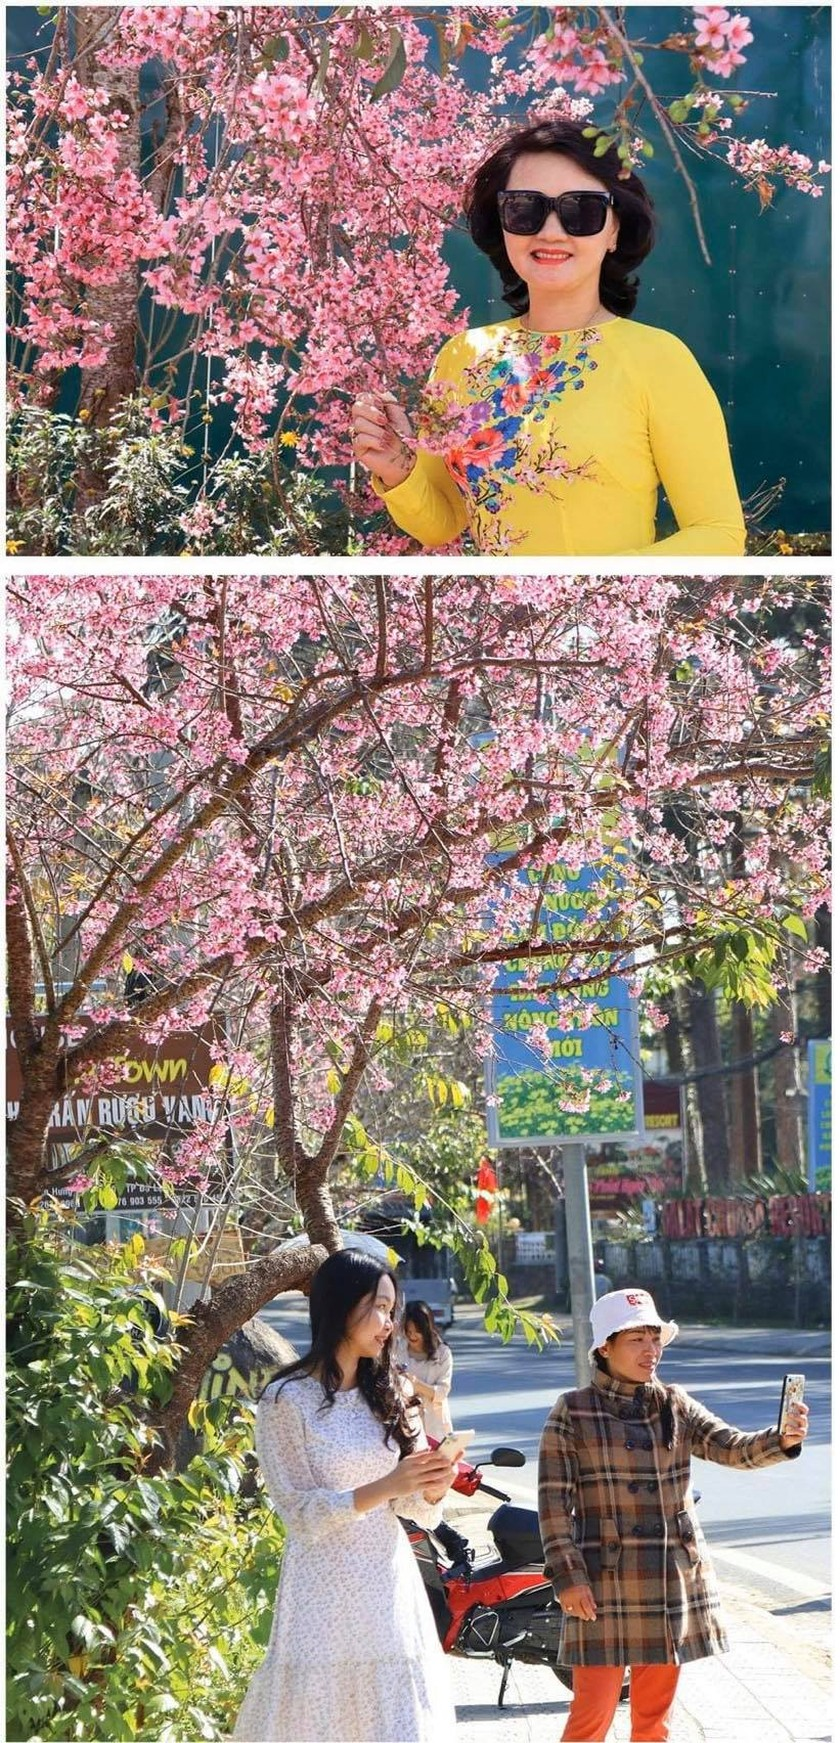 Da Lat turns a ravishing shade of pink with cherry blossoms in full bloom ảnh 6